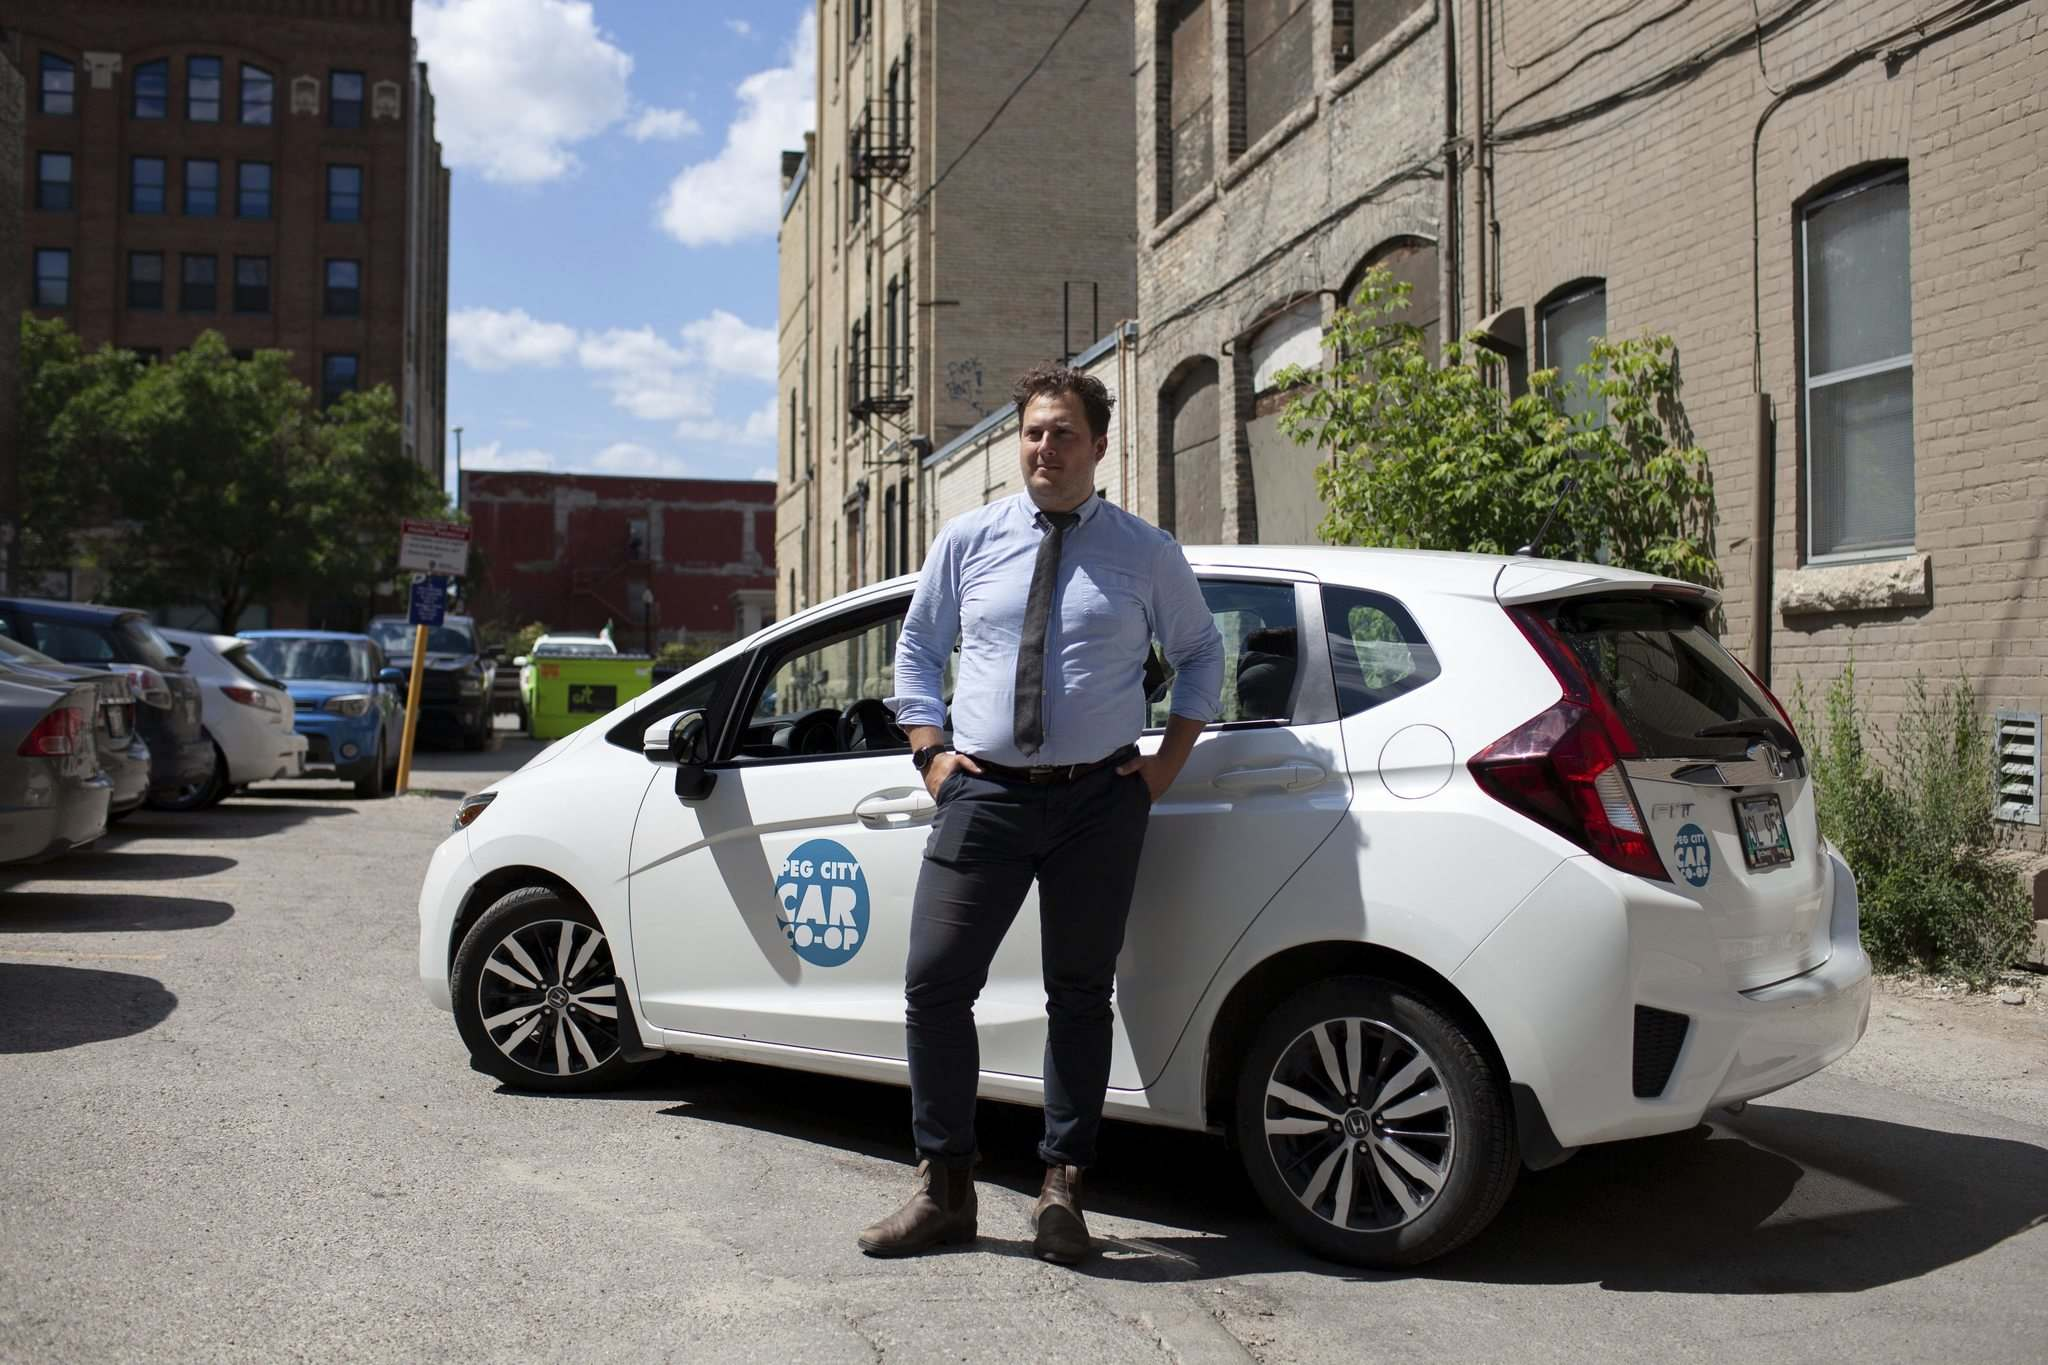 ANDREW RYAN / WINNIPEG FREE PRESS</p><p>Philip Mikulec, operations manager for Peg City Car Co-op, stands beside one of the group&rsquo;s vehicles. The co-op has expanded its fleet from three vehicles in 2011 to 26 today.</p></p>